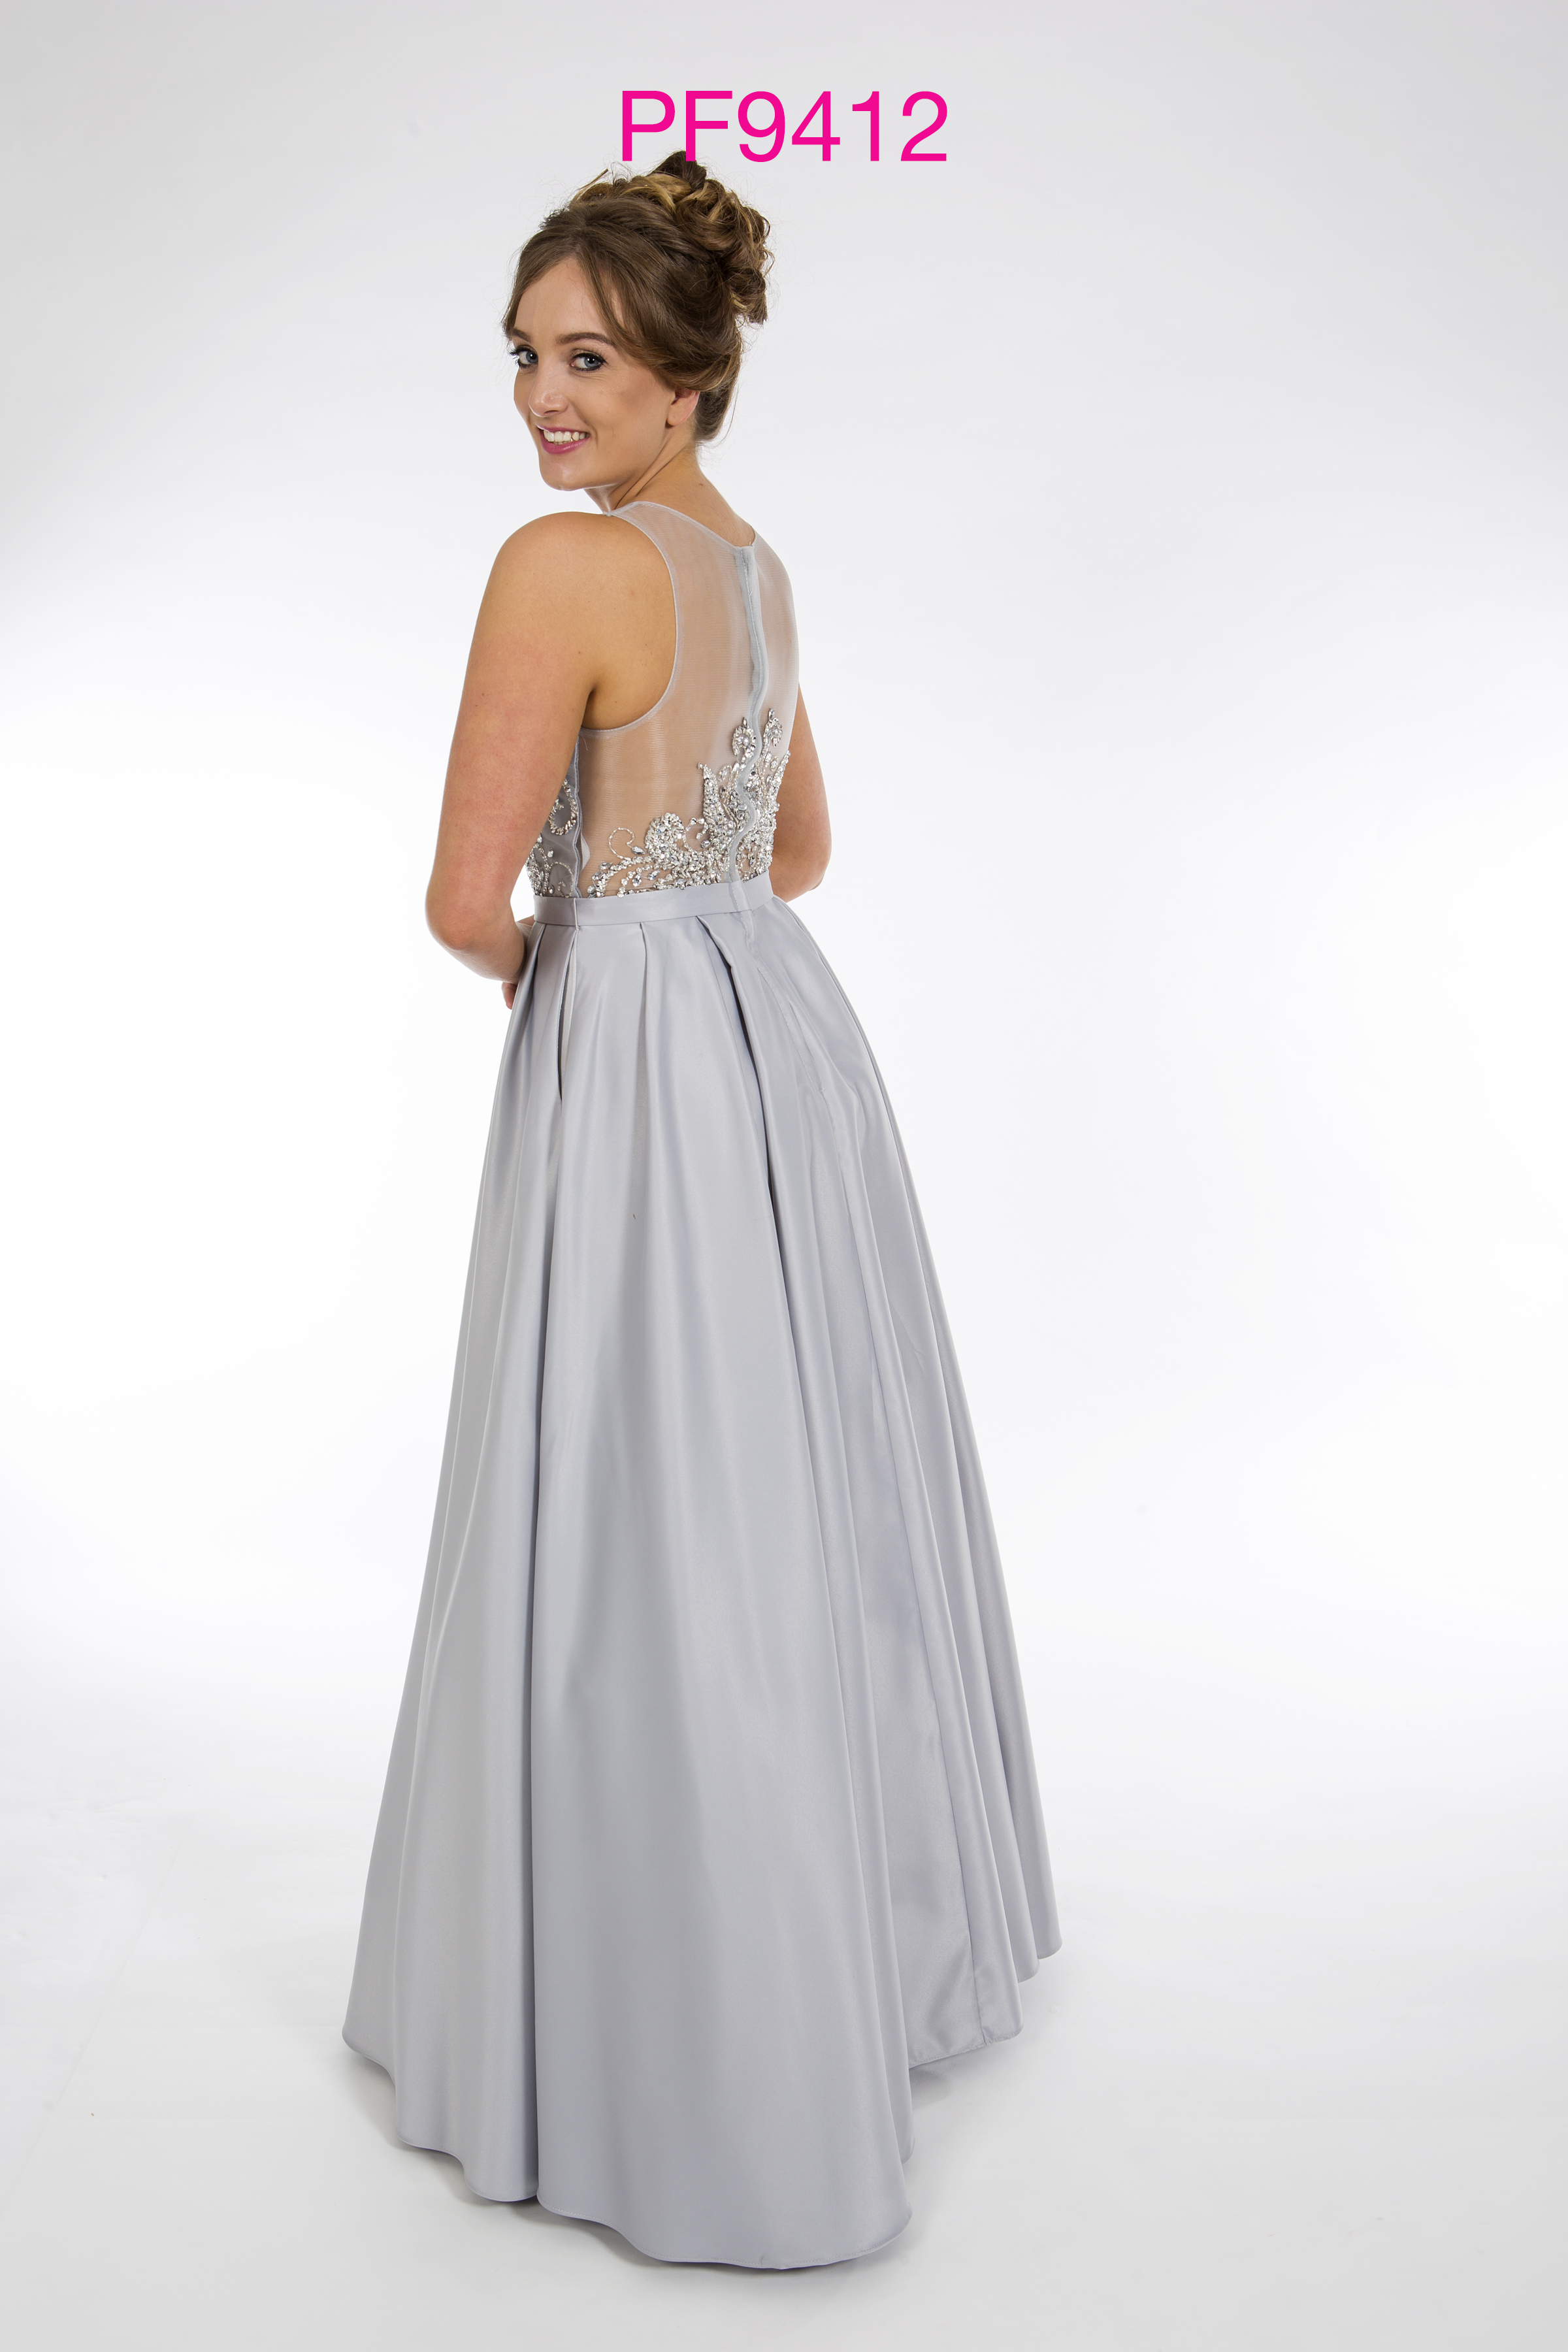 Prom Frocks Pf9412 Grey Prom Dress Prom Frocks Uk Prom